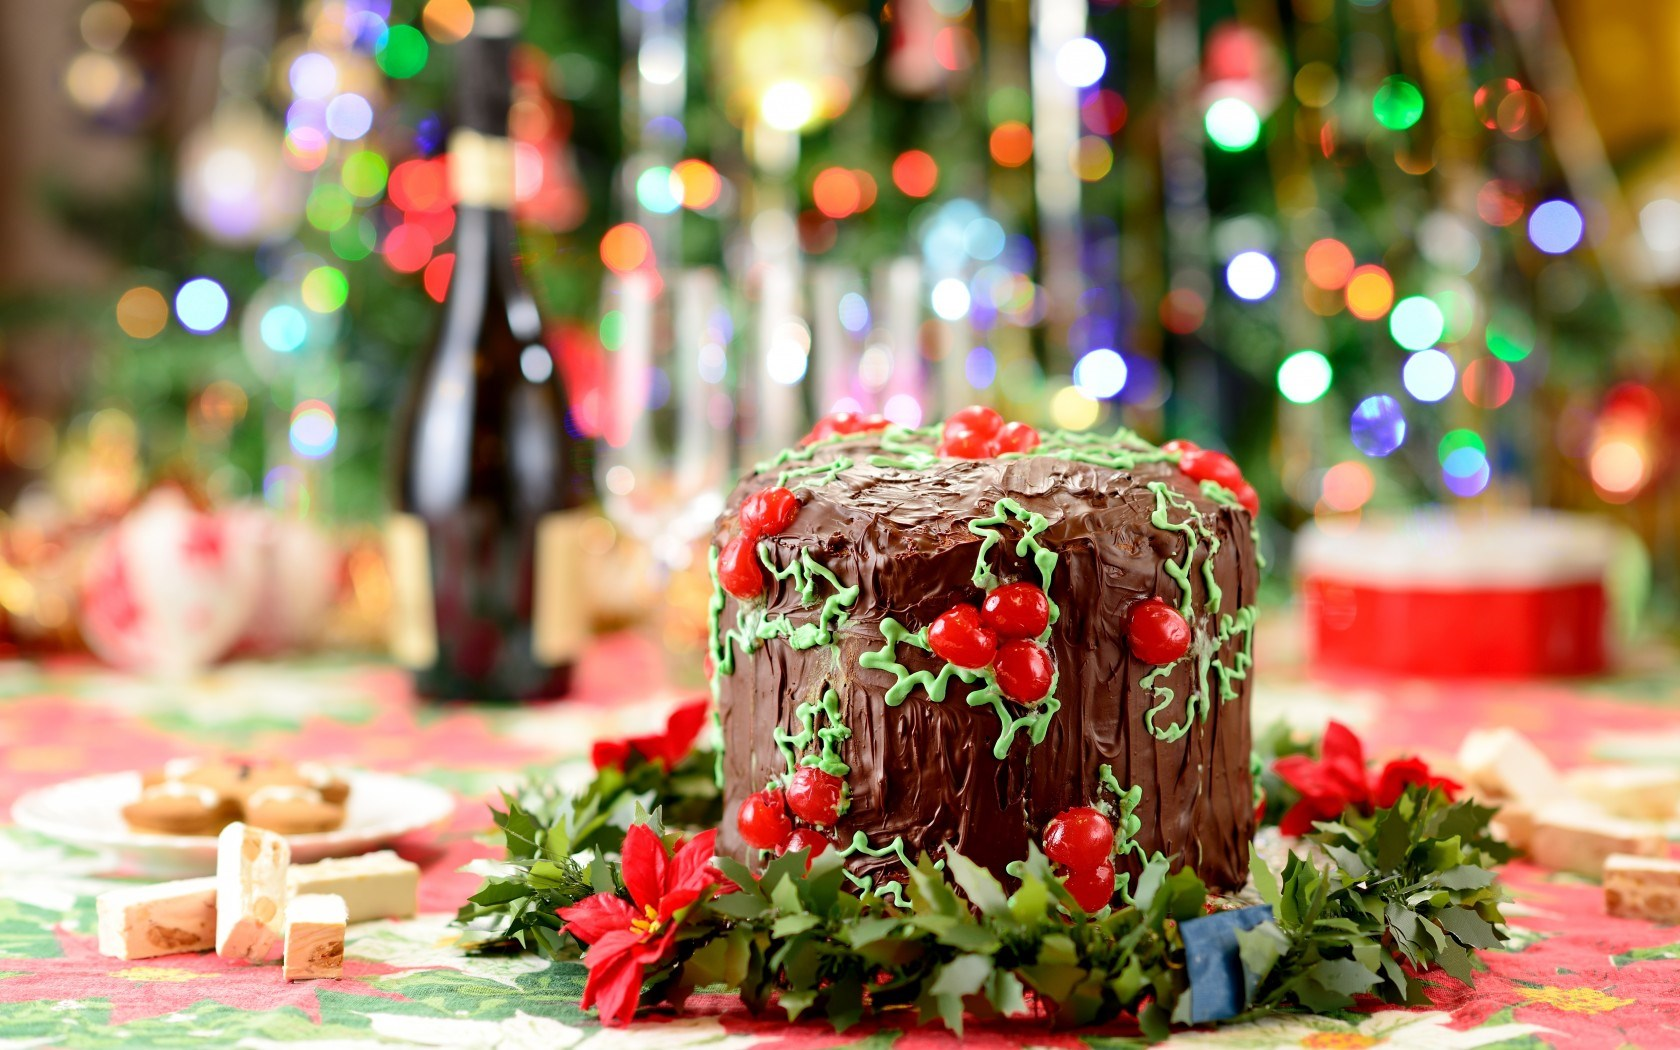 Cake Chocolate Food Holiday Winter Christmas New Year